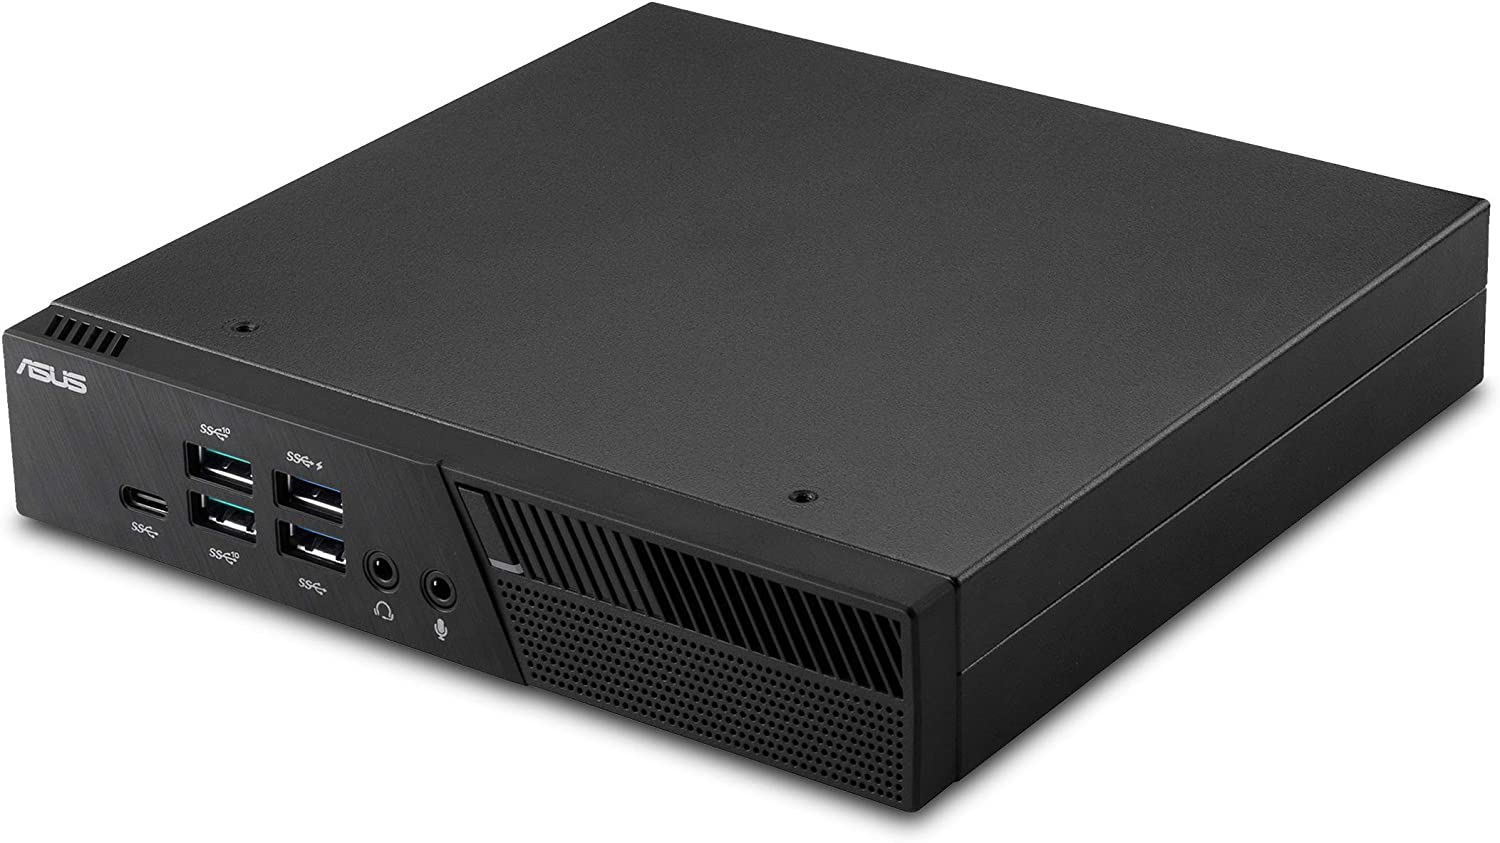 Asus PB60-B3094ZD PB60 Mini PC with Intel Core i3-8100T and integrated Intel 4K UHD Graphics